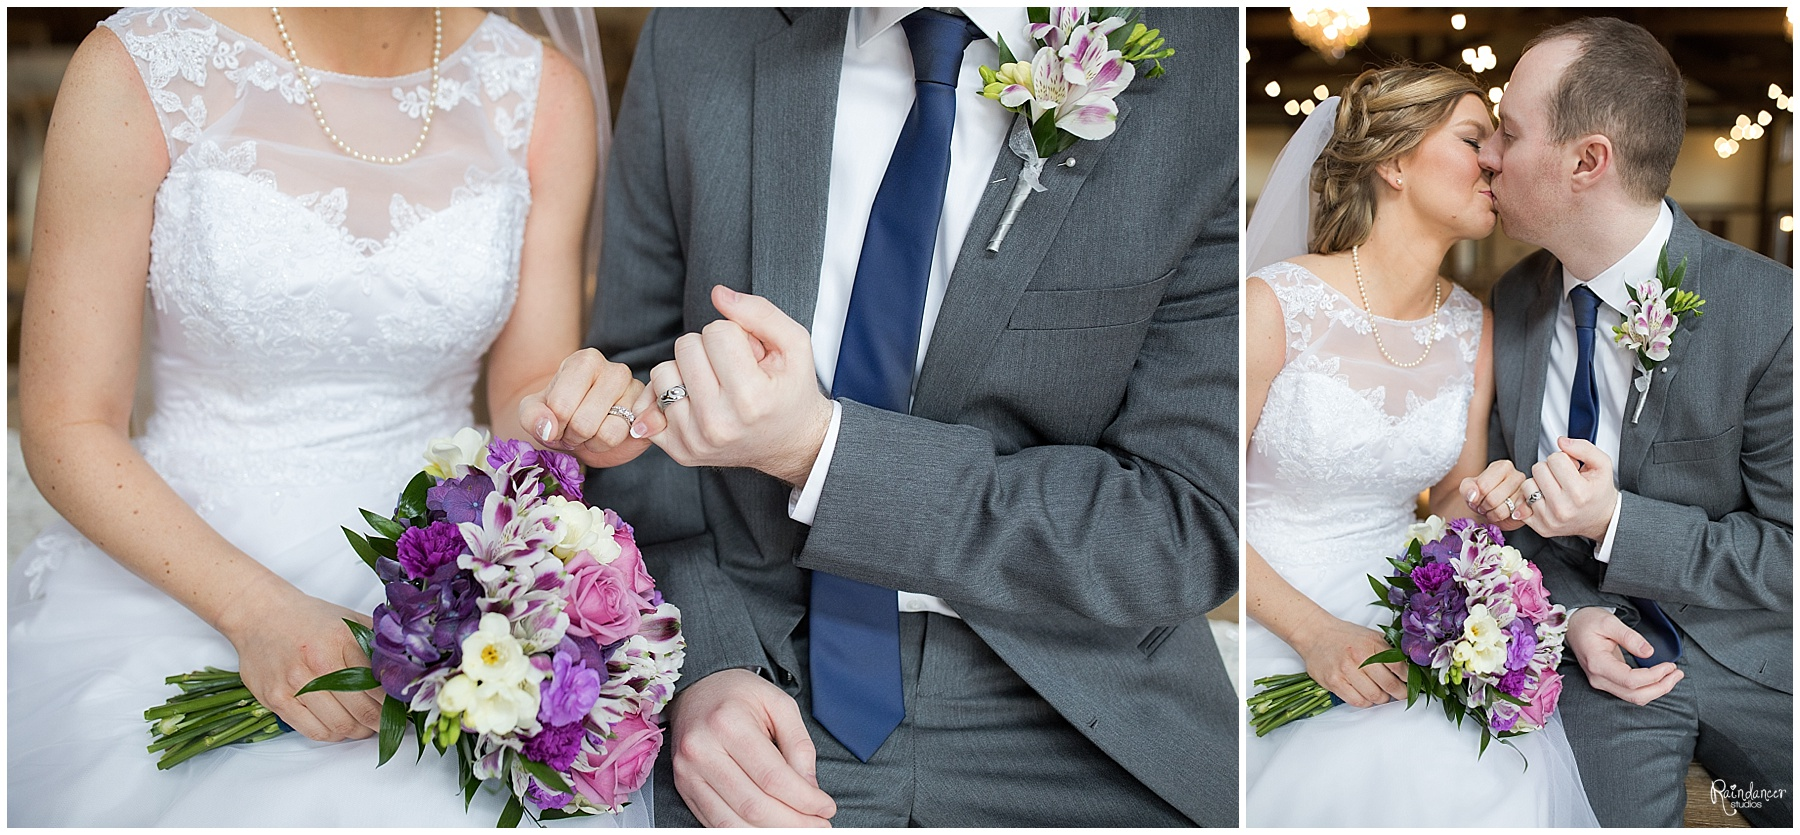 Bride and groom giving a pinky promise while kissing by Raindancer Studios Indianapolis Wedding Photographer Jill Howell